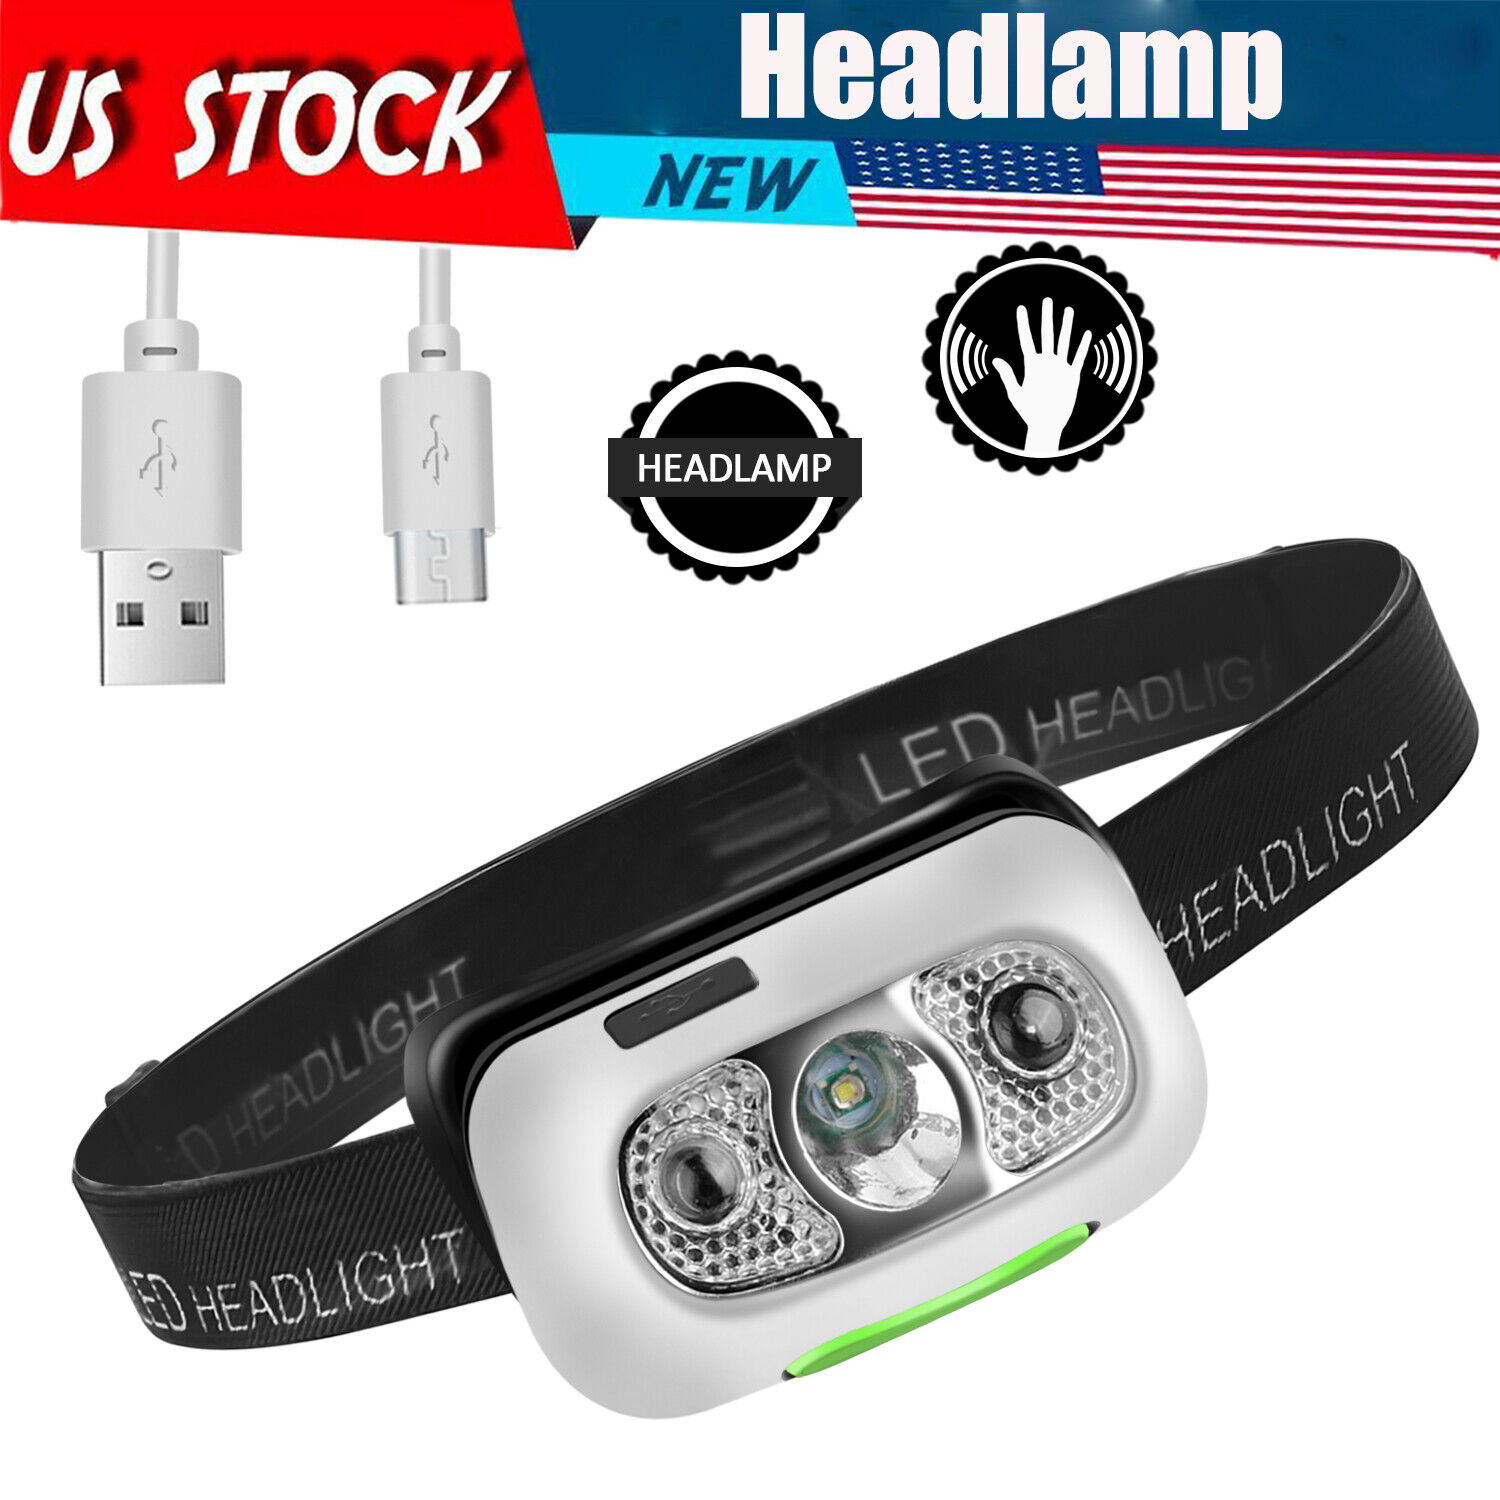 New 2020 USB Rechargeable LED Headlamp Torch Flashlight Waterproof Headlight US Camping & Hiking